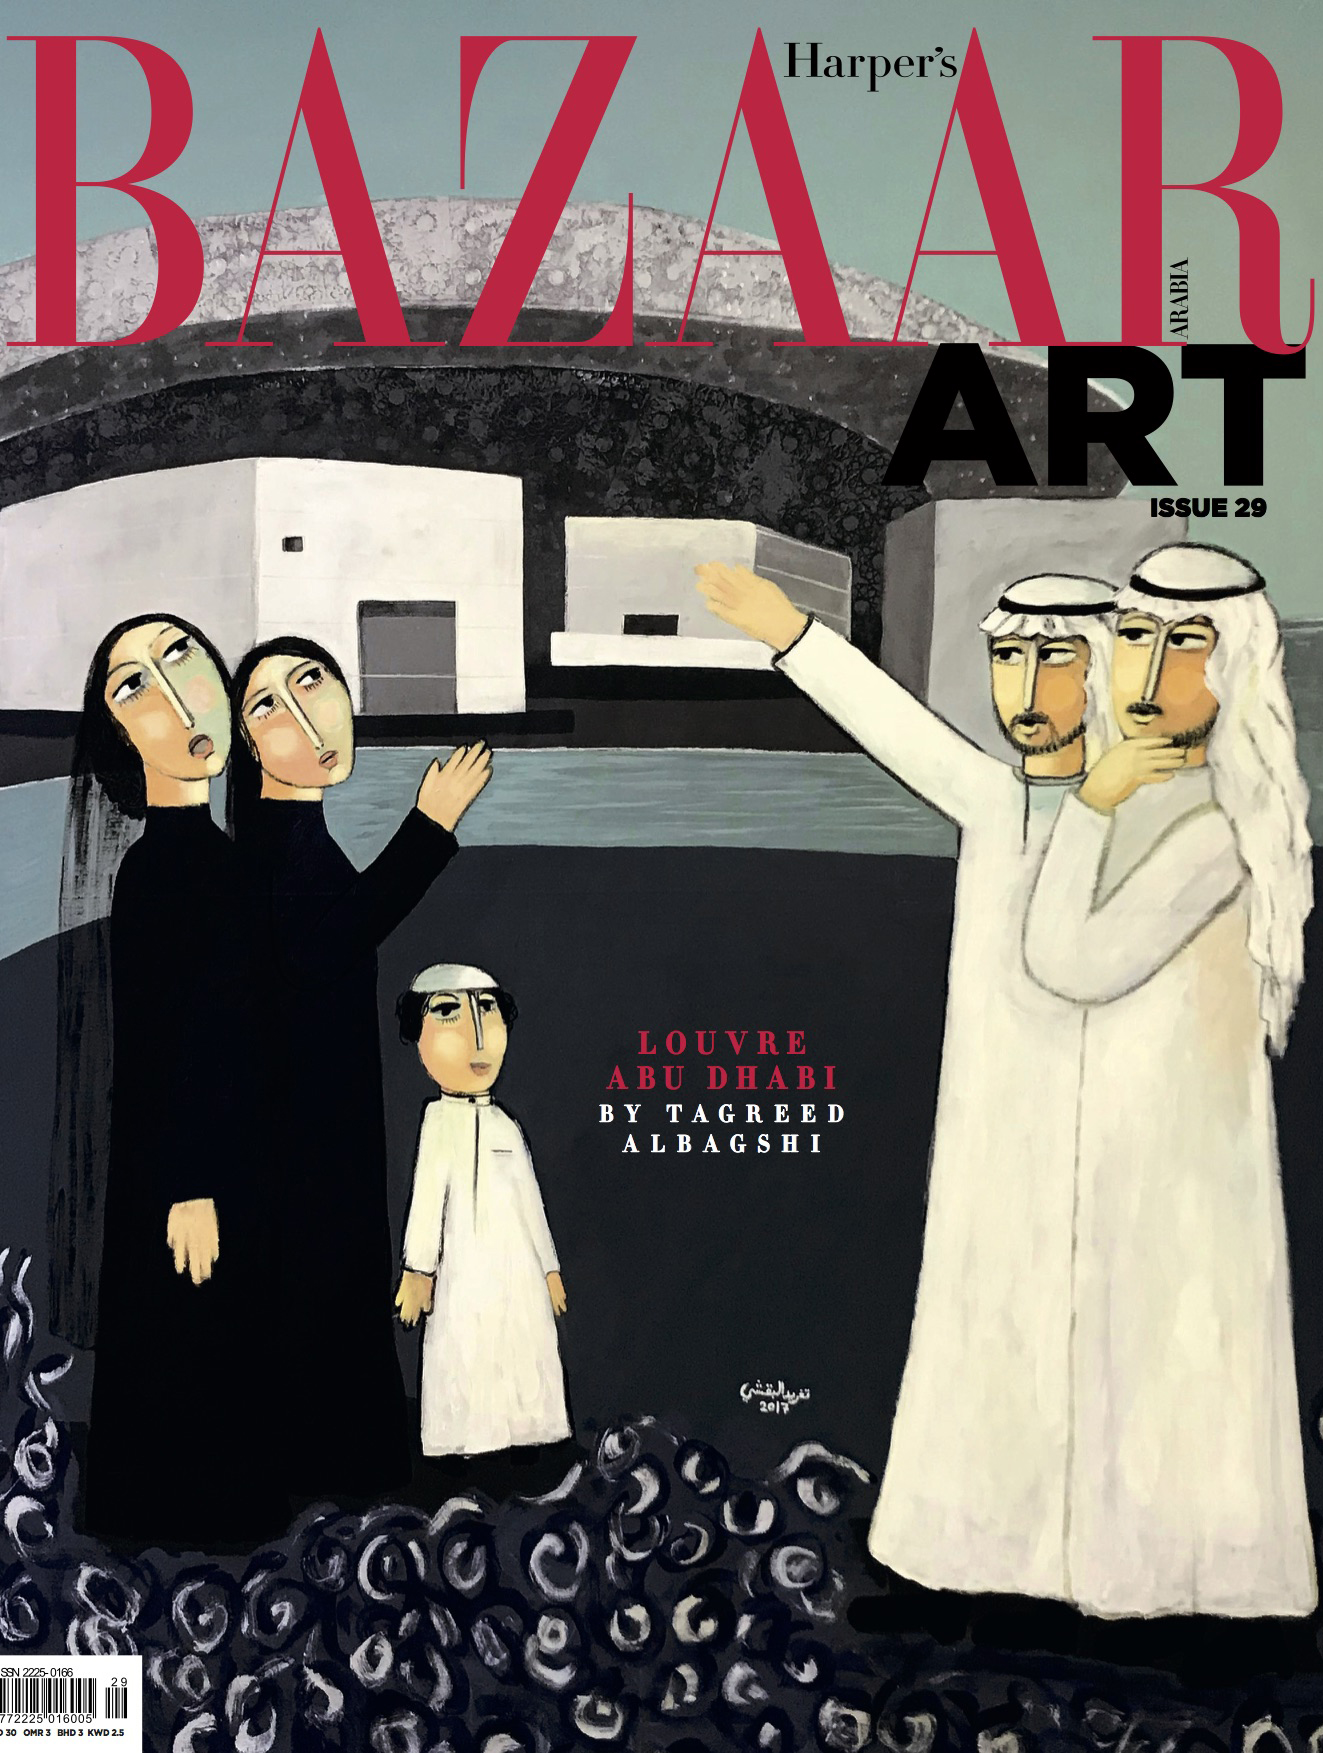 "Harper's Bazaar Art ""A Voice for Arab Art"" featuring Abraham Karbakajian - November 2017"